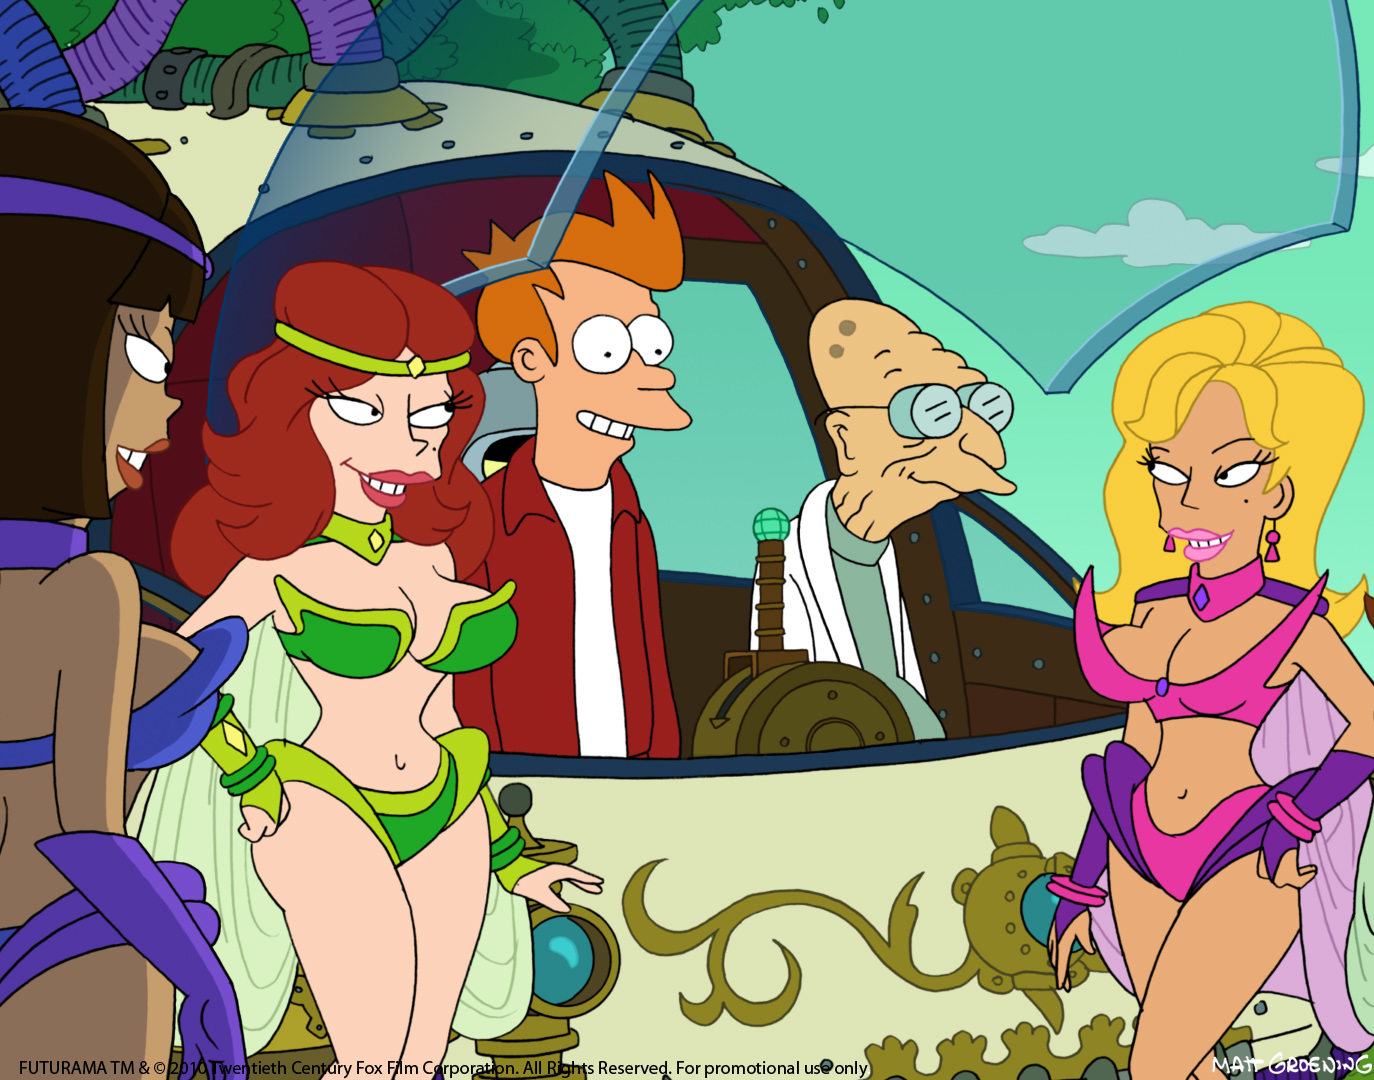 Futurama Time Travel Episode